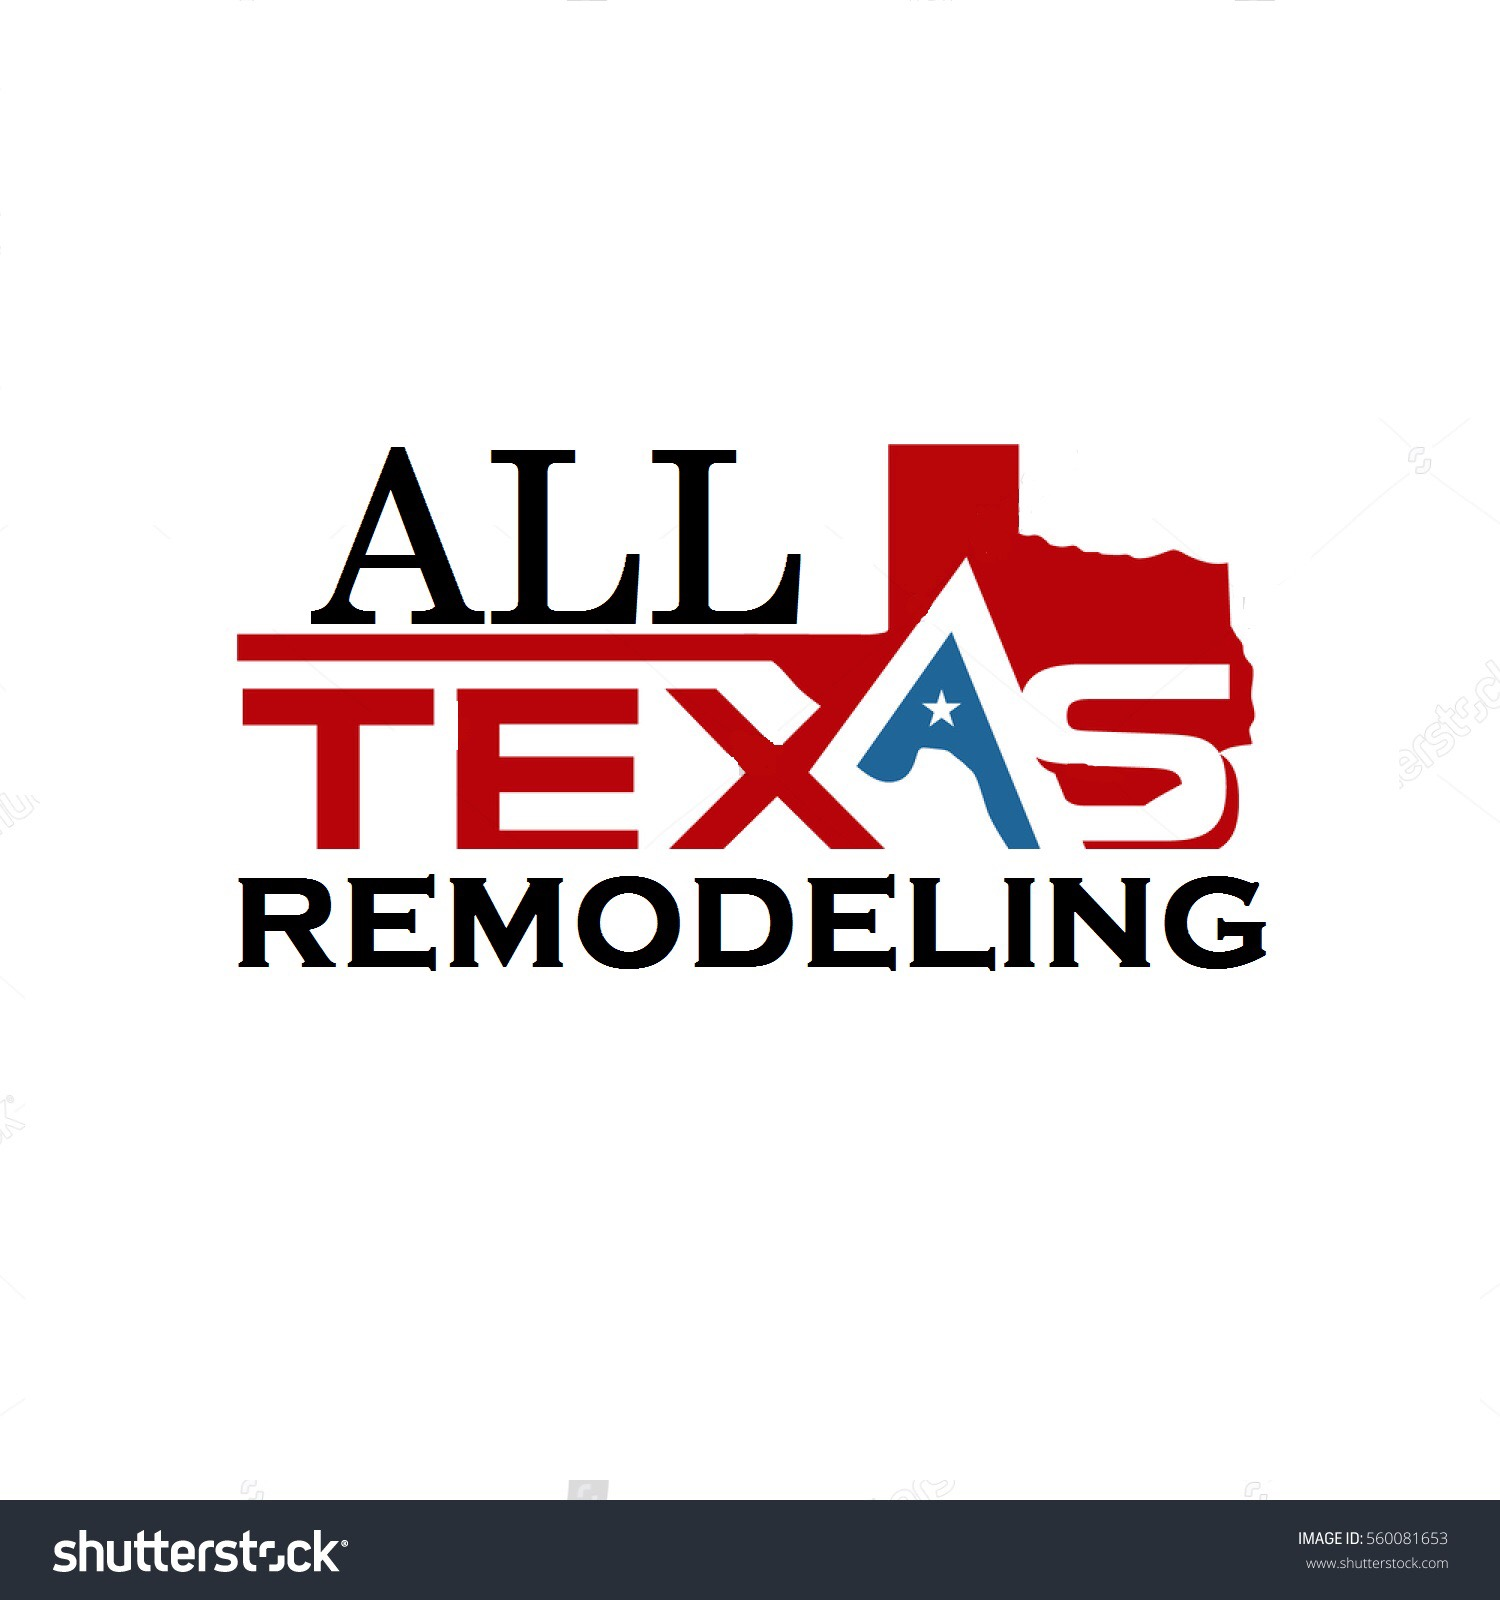 All Texas Home Services Experts Sales & Remodeling logo